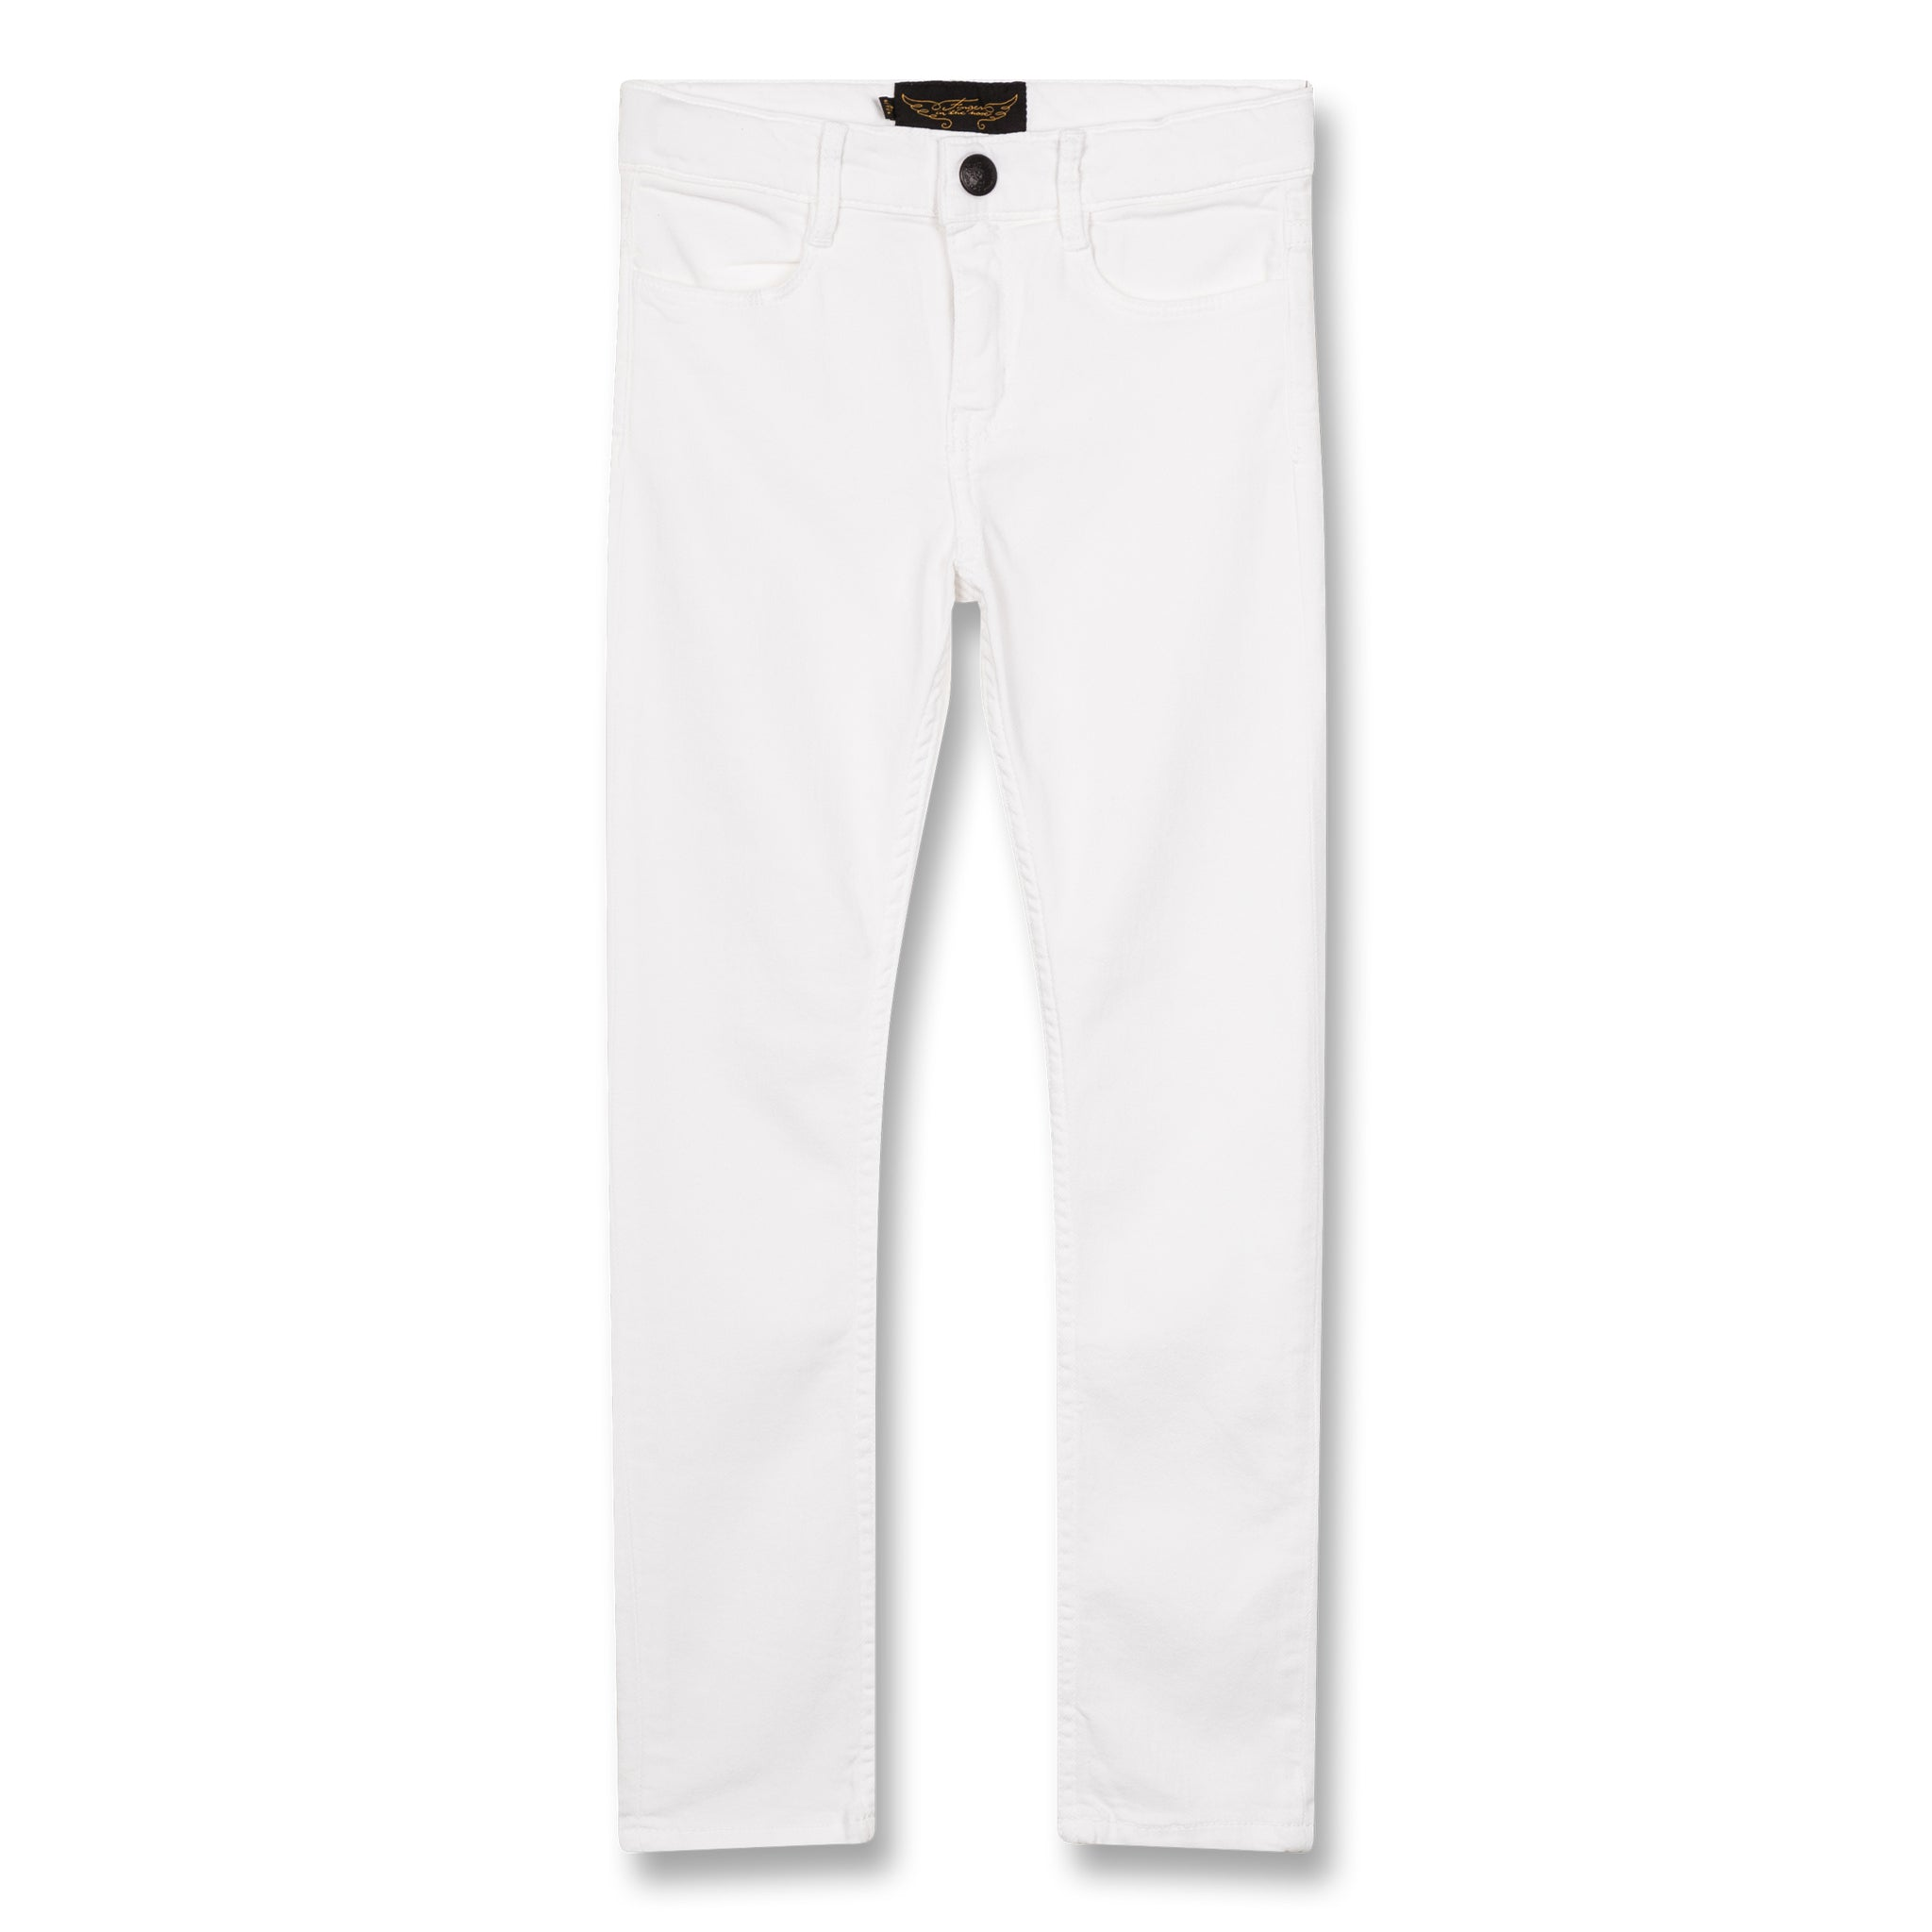 TAMA Optical White - Skinny Fit Jeans 1